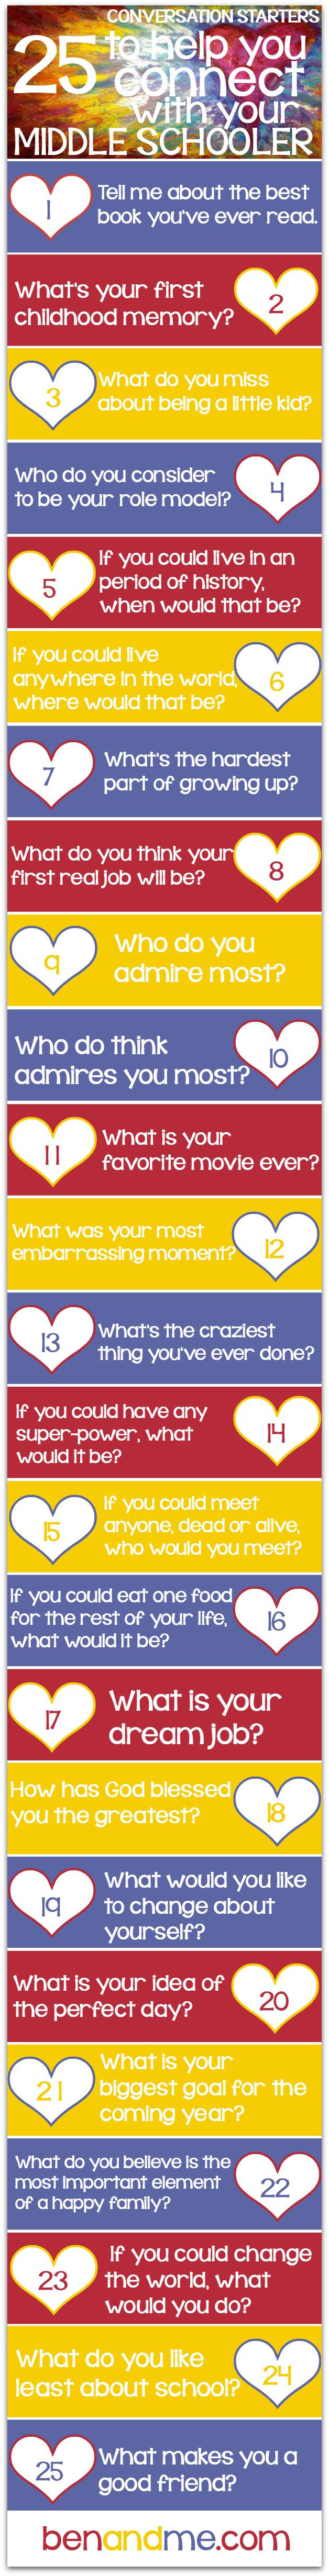 25 conversation starters to help you connect with your middle schooler.